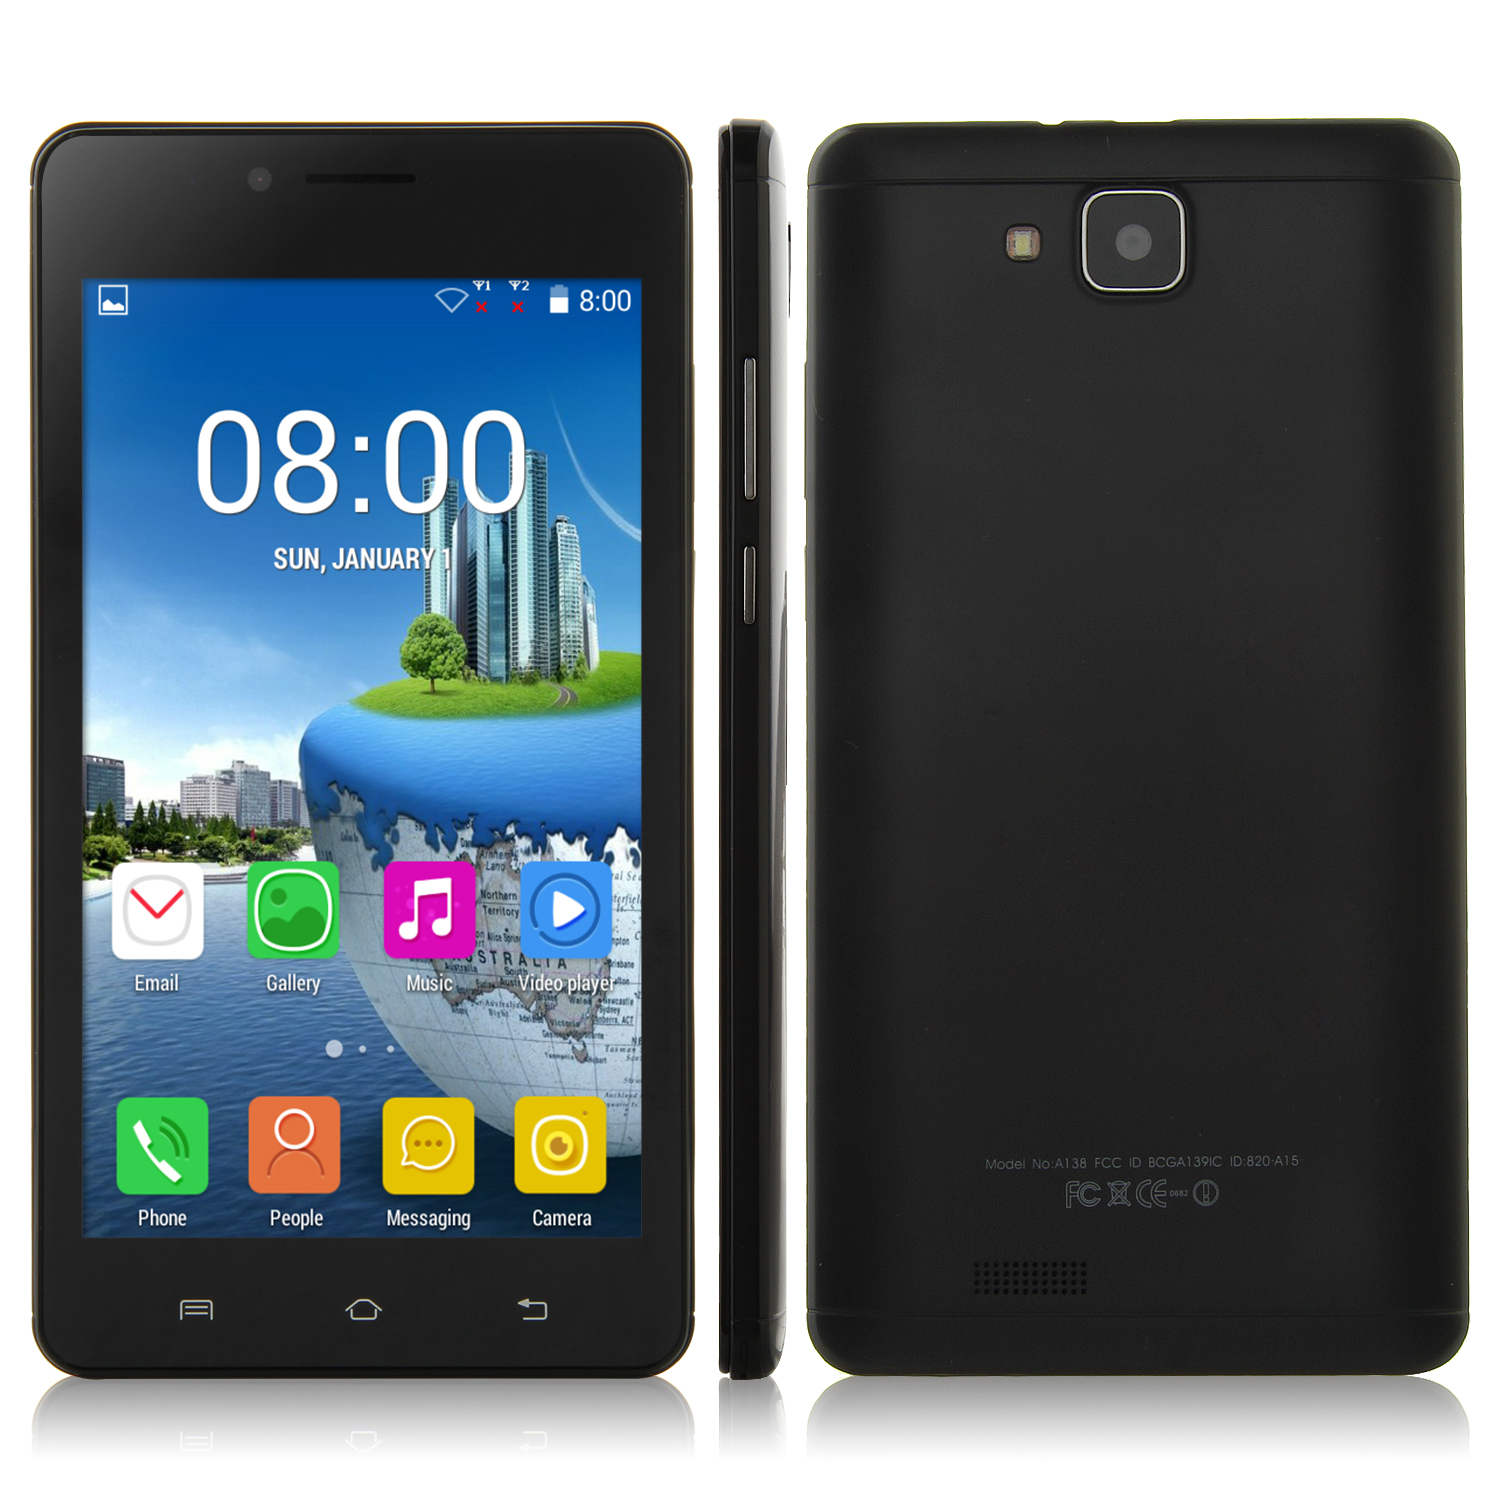 S7 Smartphone Android 4.4 MTK6572 Dual Core 5.9 Inch Screen 512MB 4GB Smart Wake Black